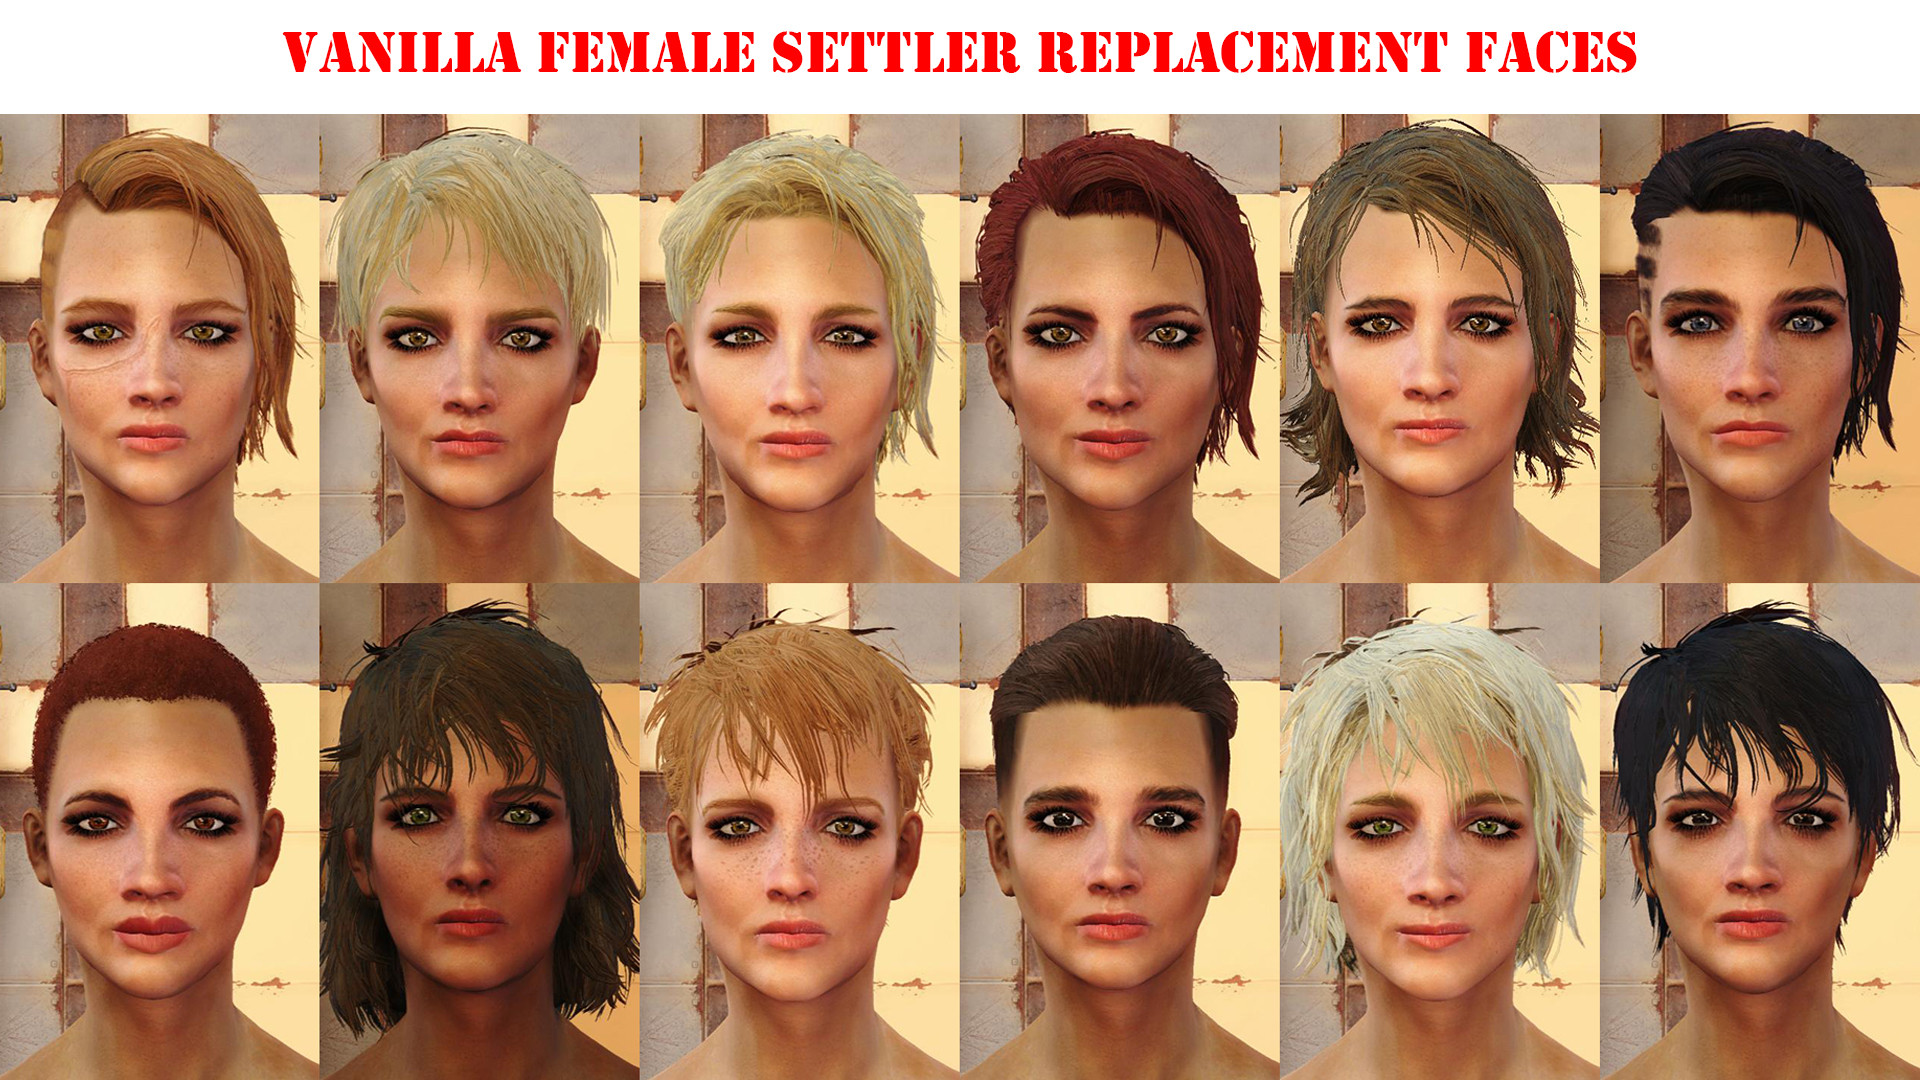 Fallout 4 Female Hairstyles List  Vanilla Settler Replacements Fallout 4 Mod